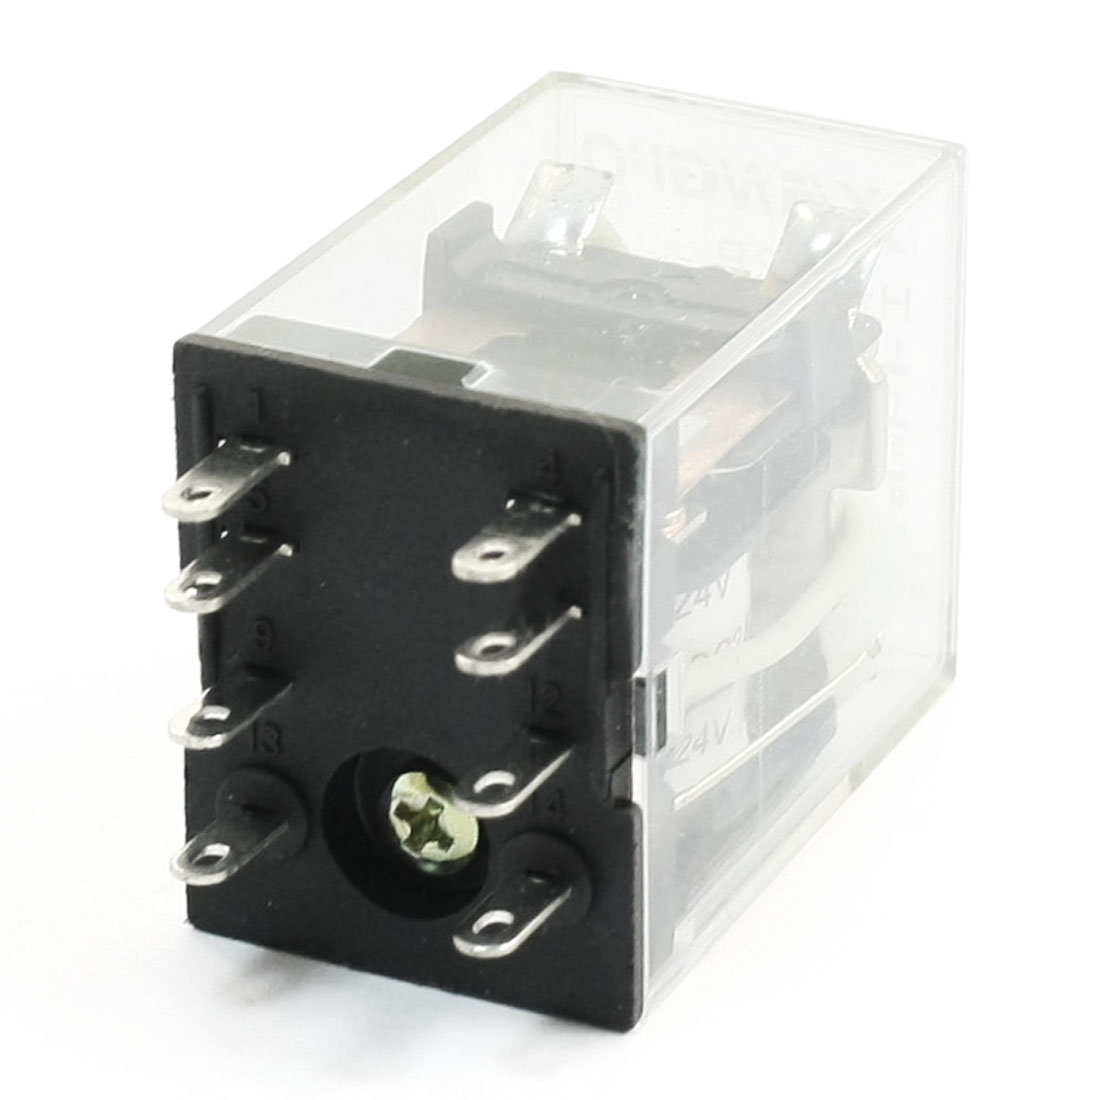 HH52P DC 24V 8 Pin DPDT Green Indicator Power Electromagnetic Relay